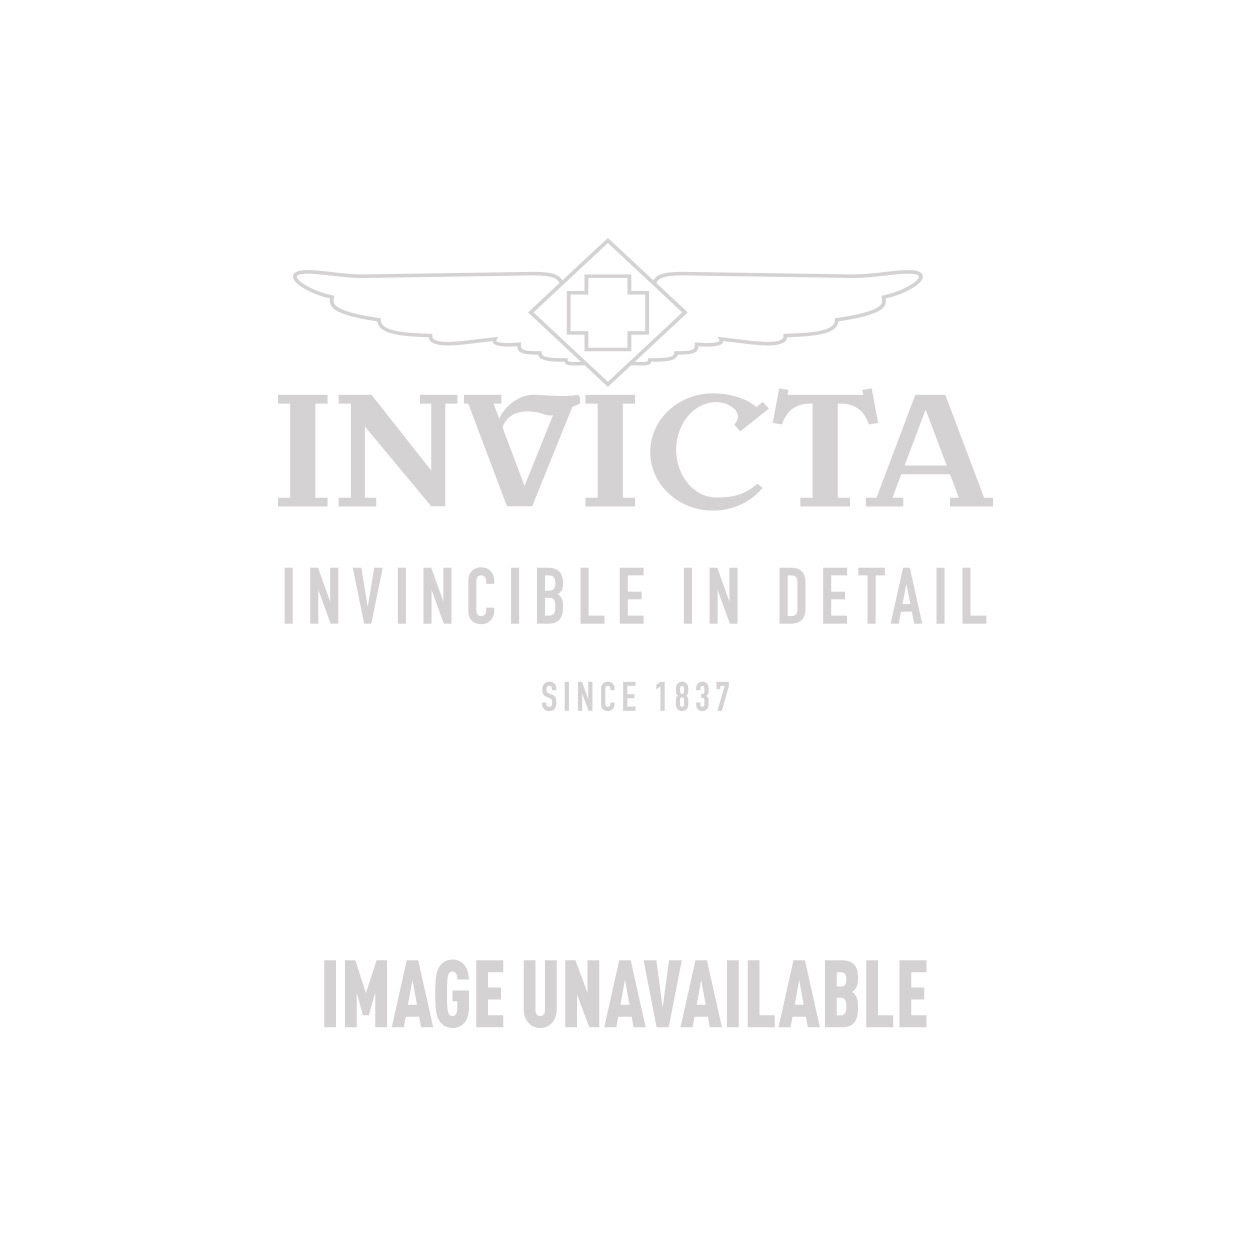 Invicta Sea Hunter Swiss Movement Quartz Watch - Gold case with Gold tone Stainless Steel band - Model 19603